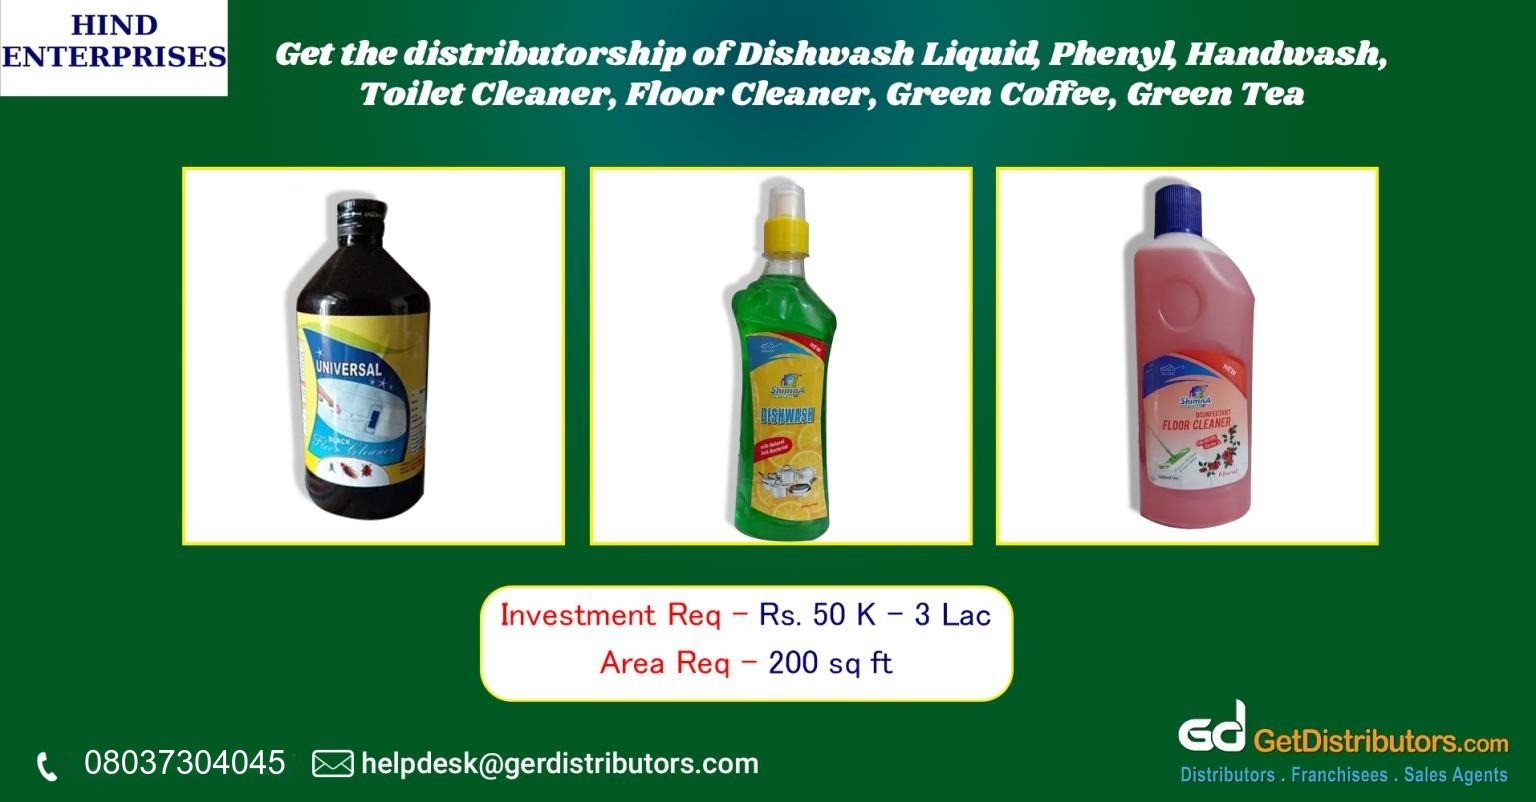 Top grade chemicals and beverages for distribution